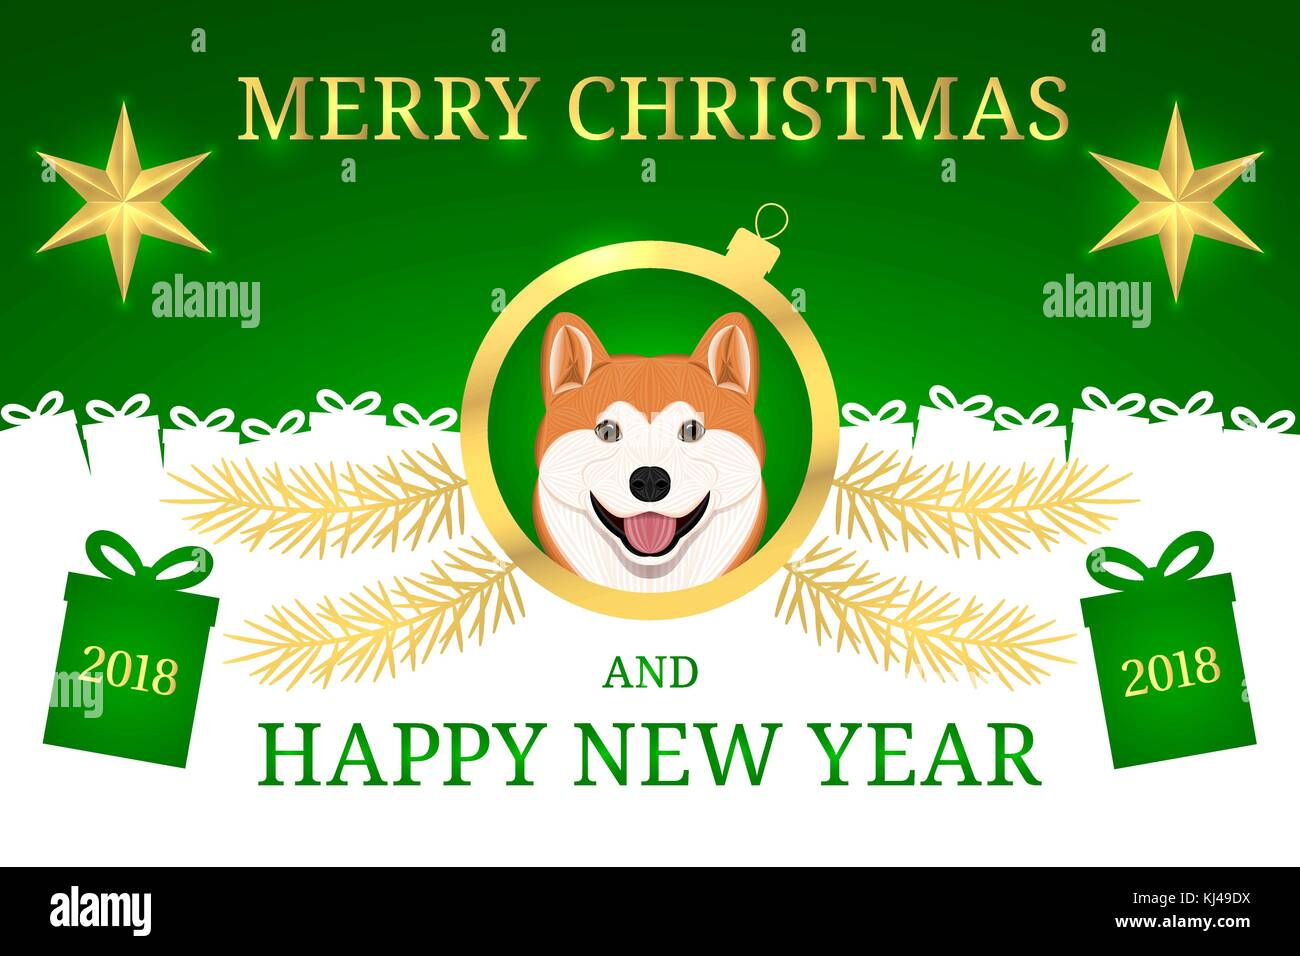 happy new year 2018 and merry christmas with akita inu dog vector holiday banner with merry christmas greeting in golden and green color golden shin